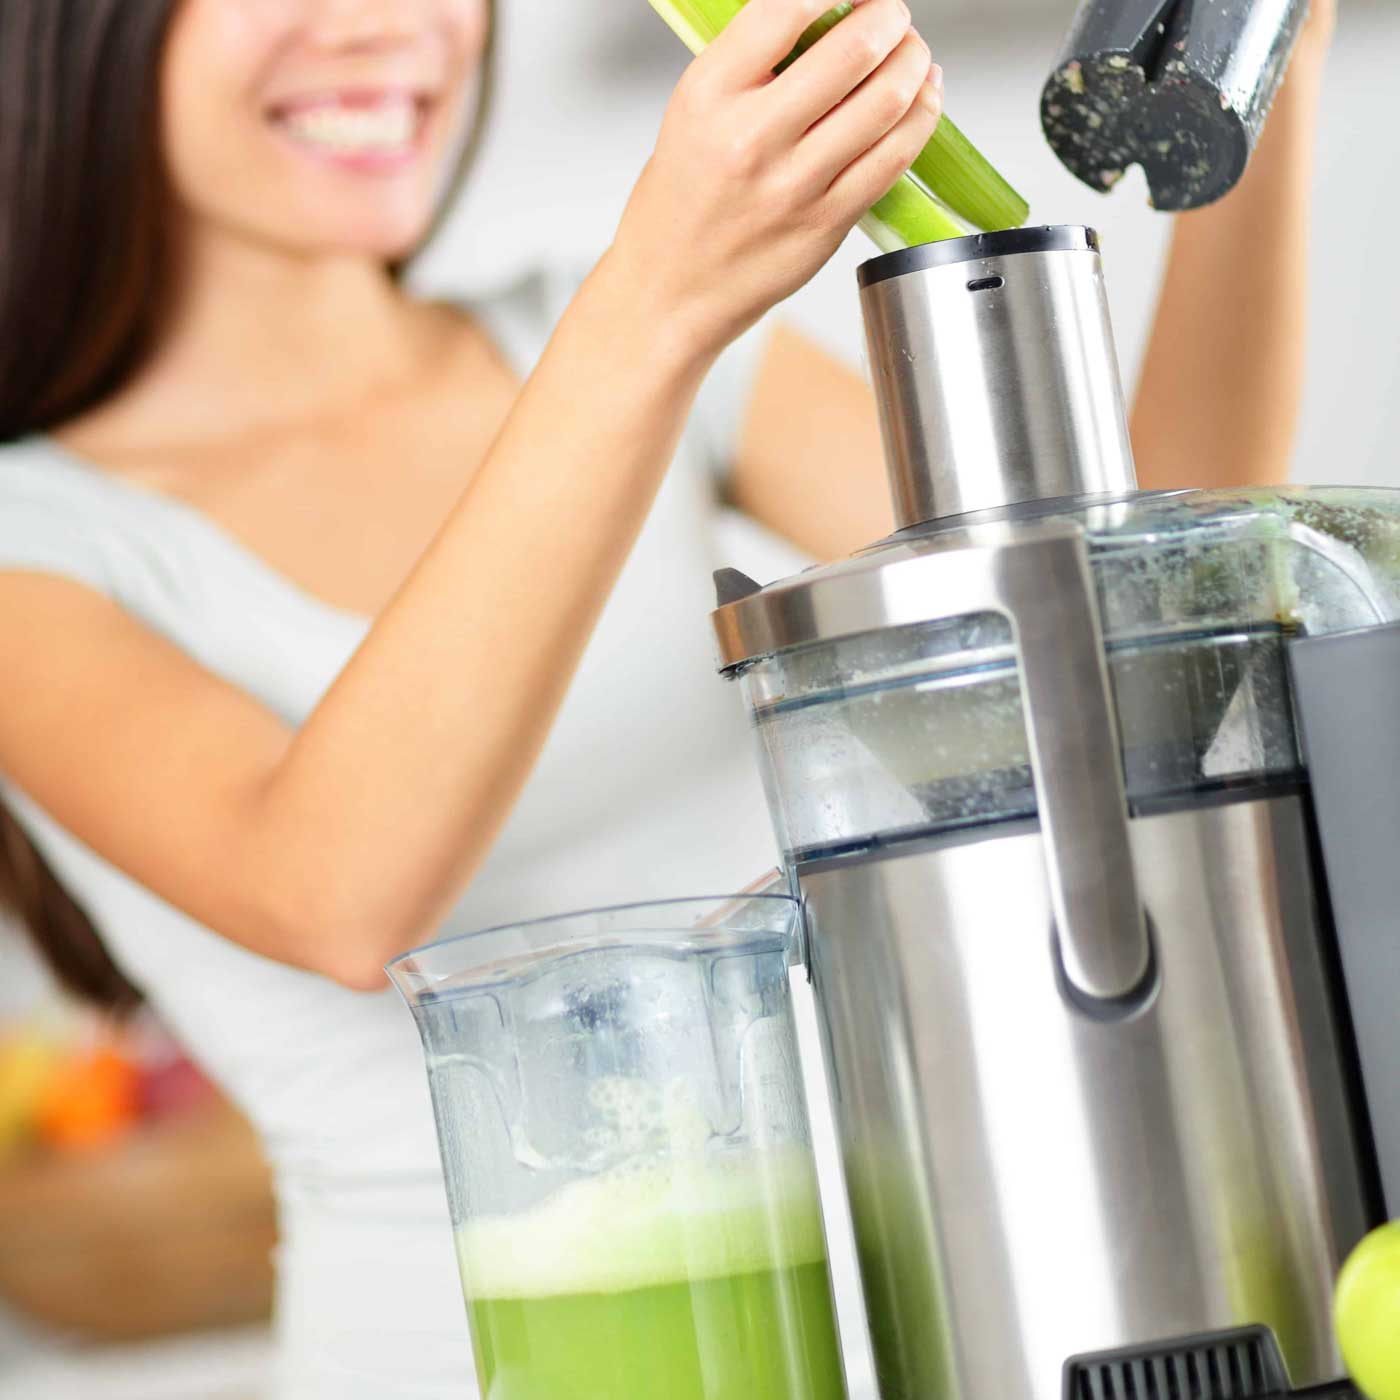 Essential Chiropractic and Healthcare Clinic - Detox and Weight Management Program Girl Doing Juice